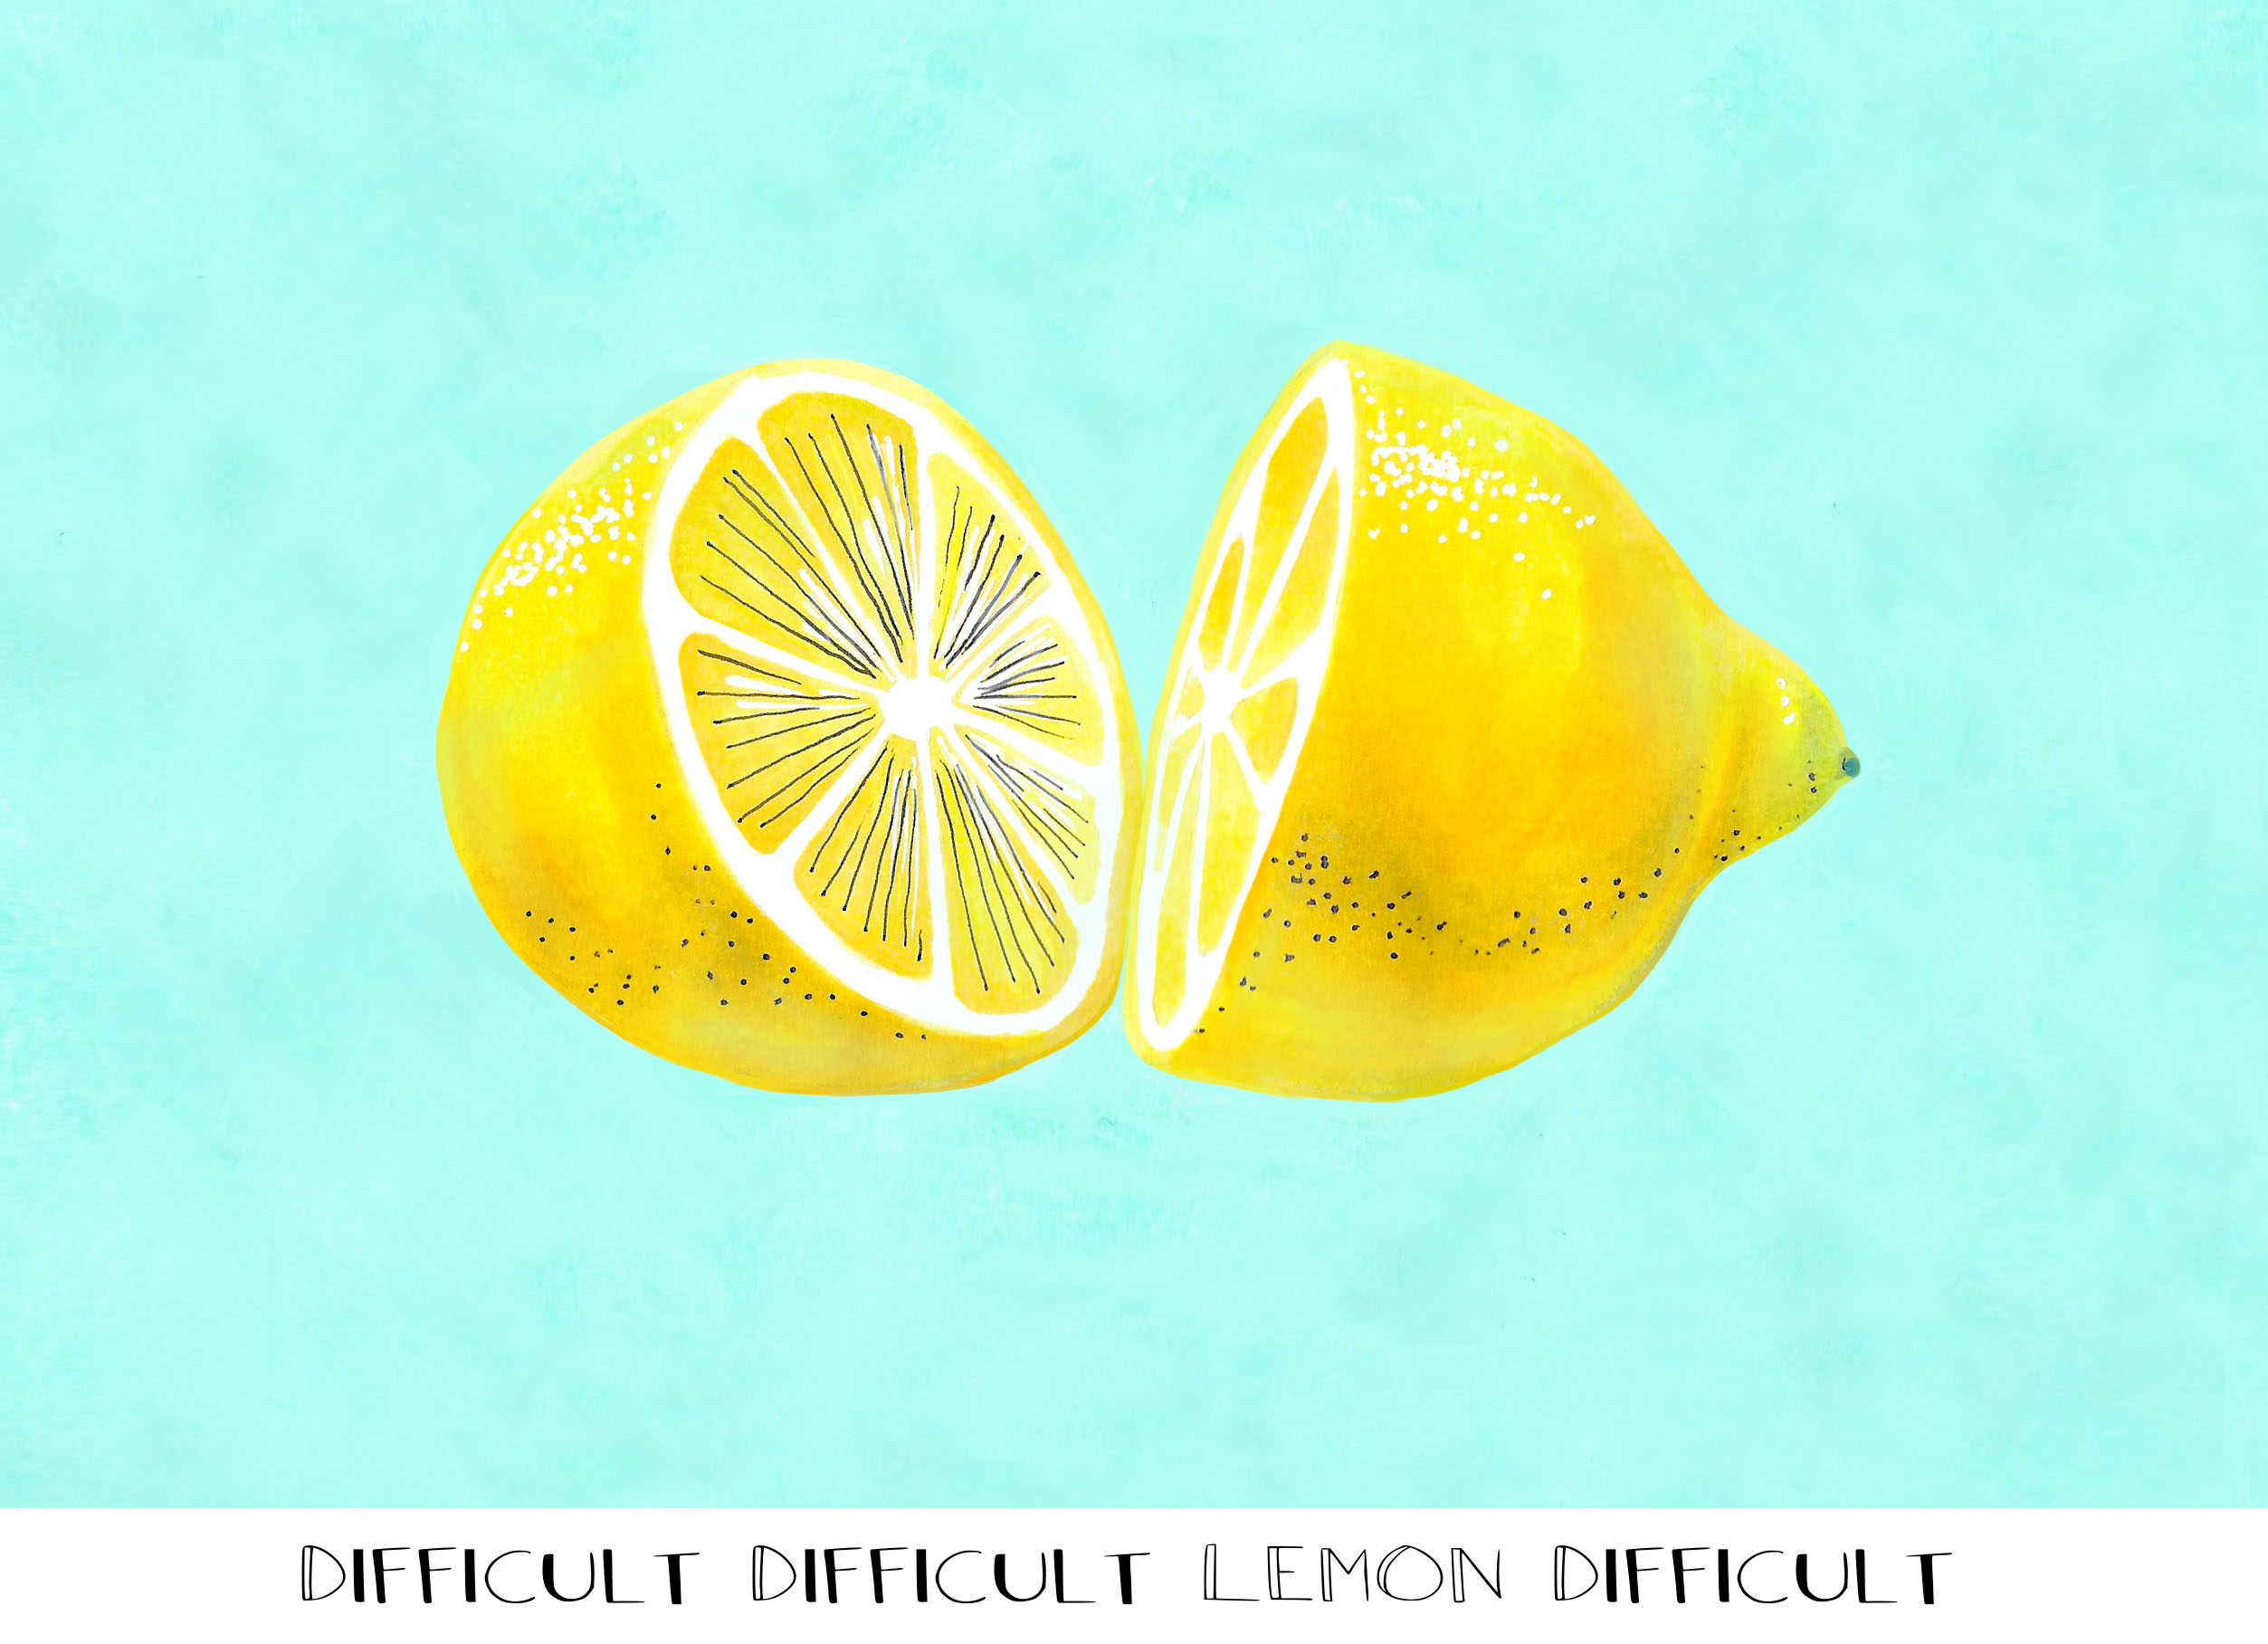 difficult lemon.jpg